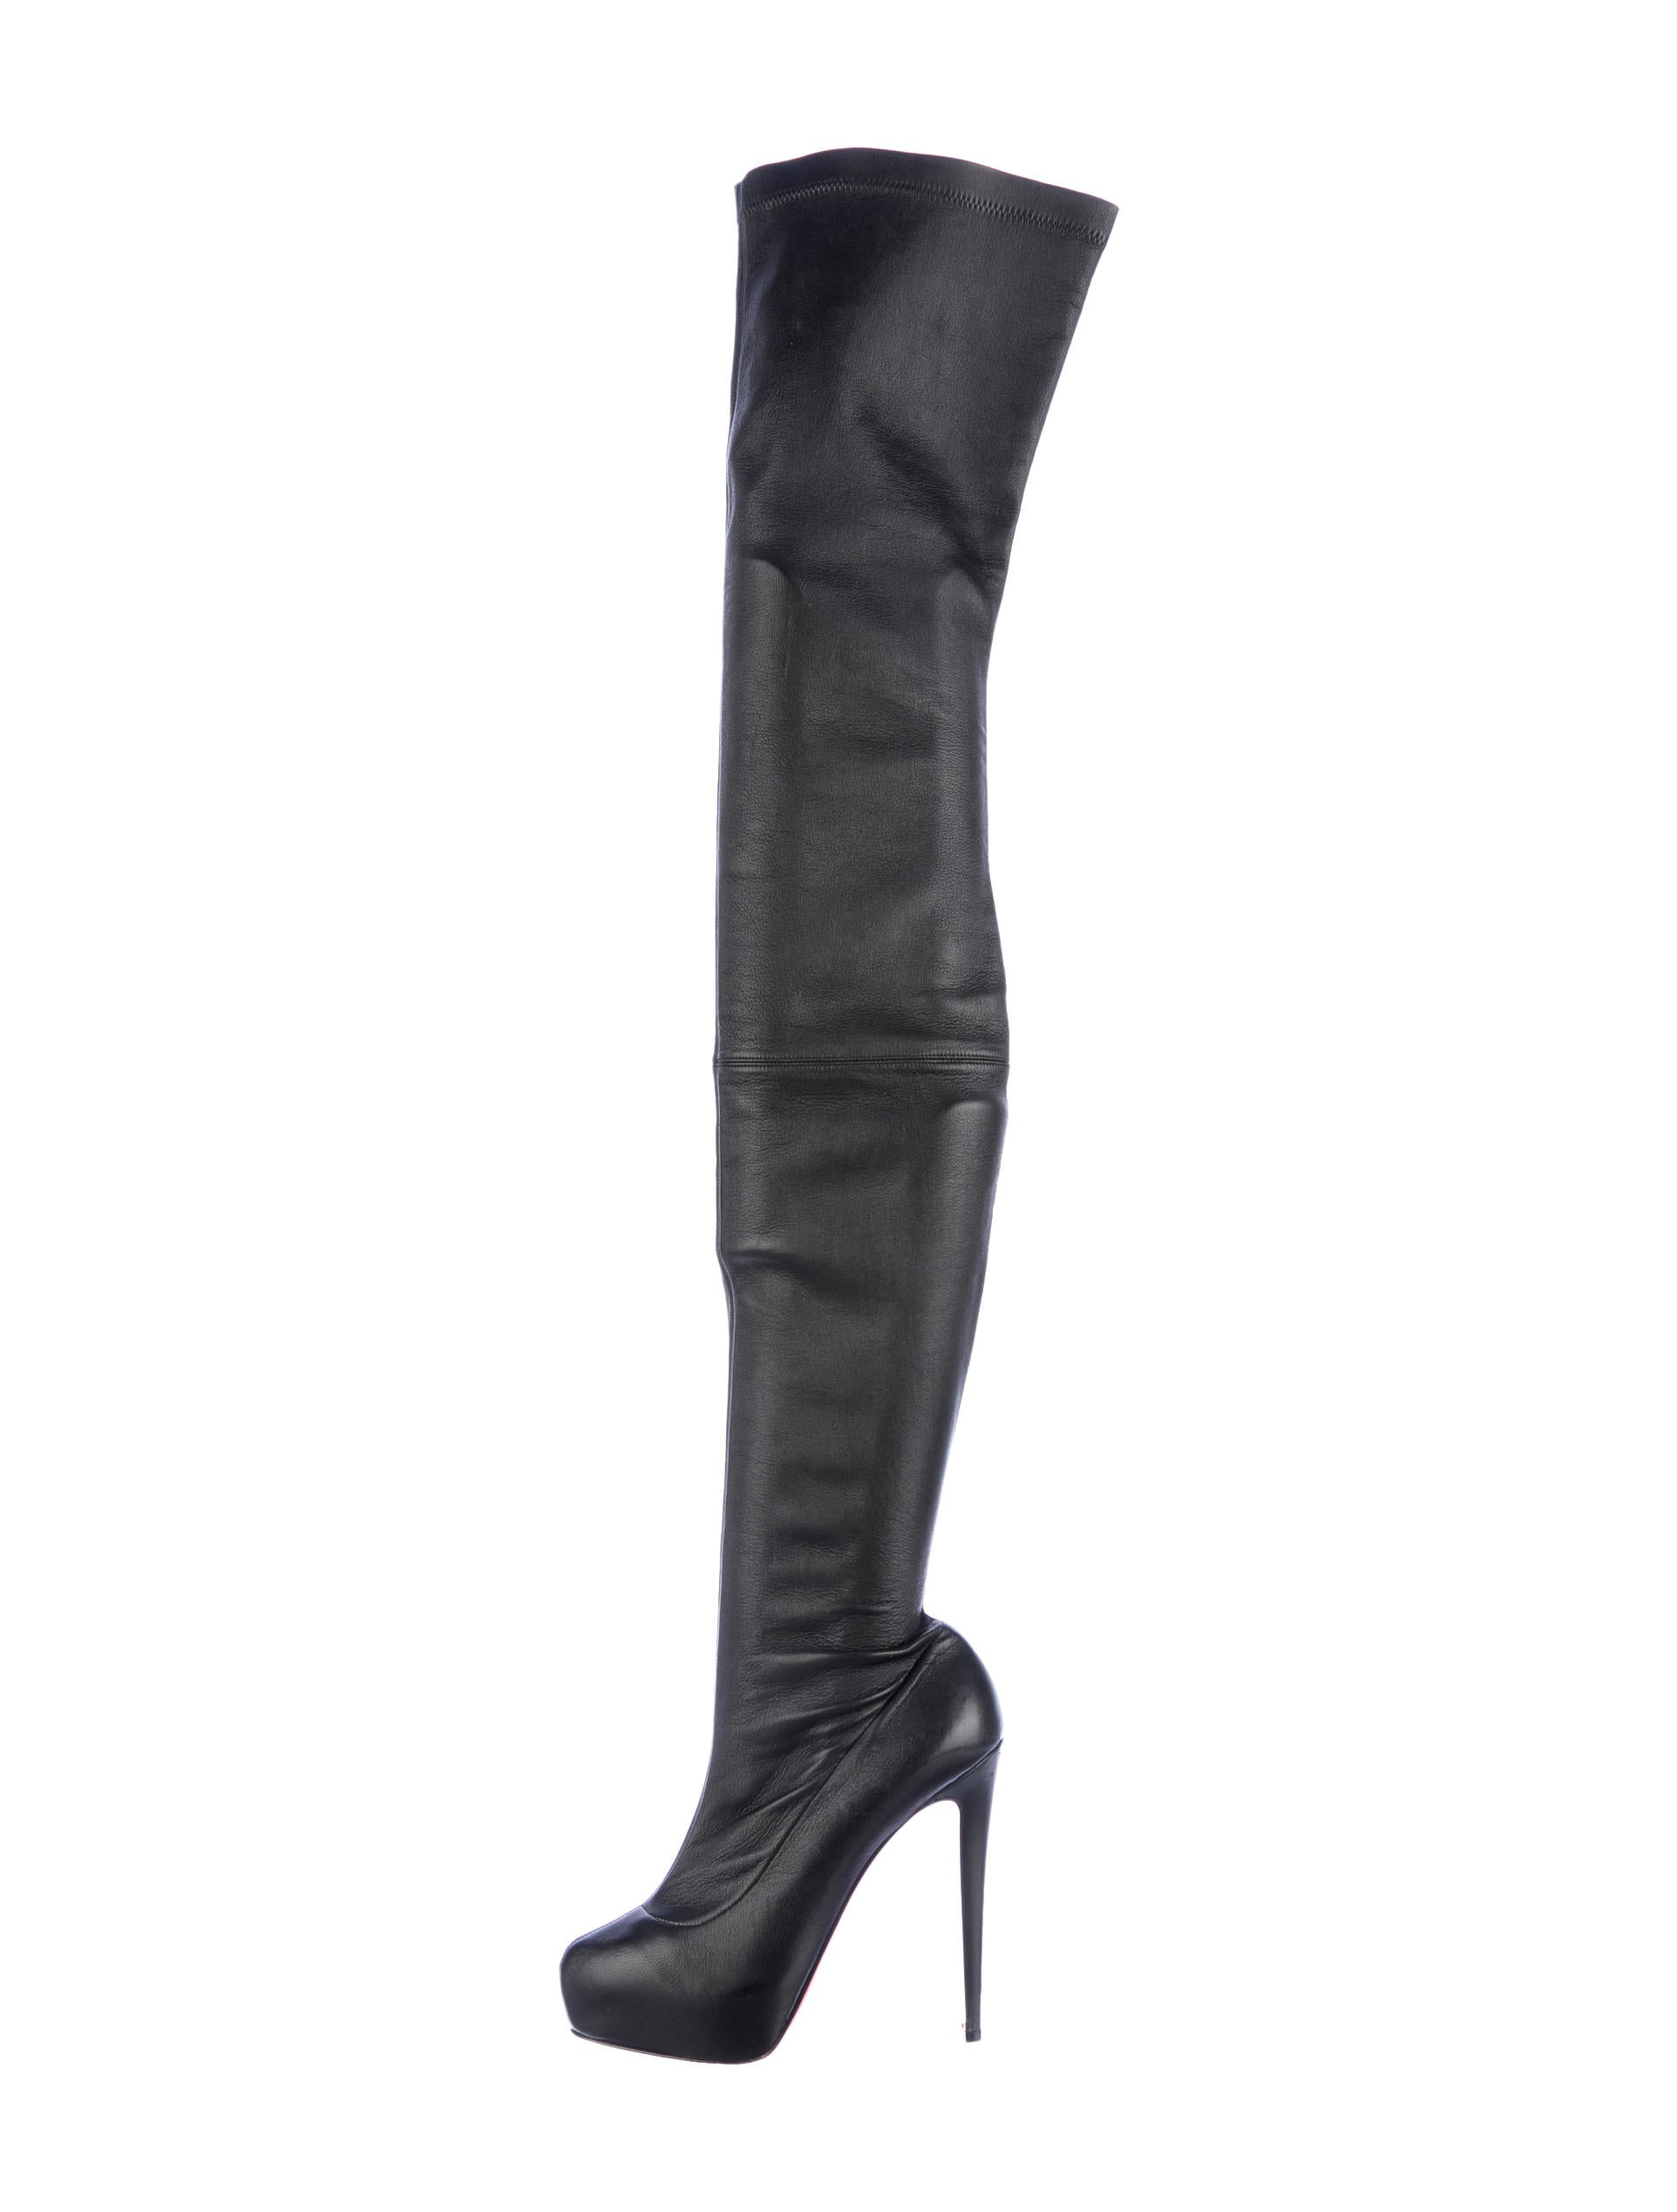 on sale 0cf8d ef3d1 Artesur » christian louboutin Monicarina thigh high boots ...